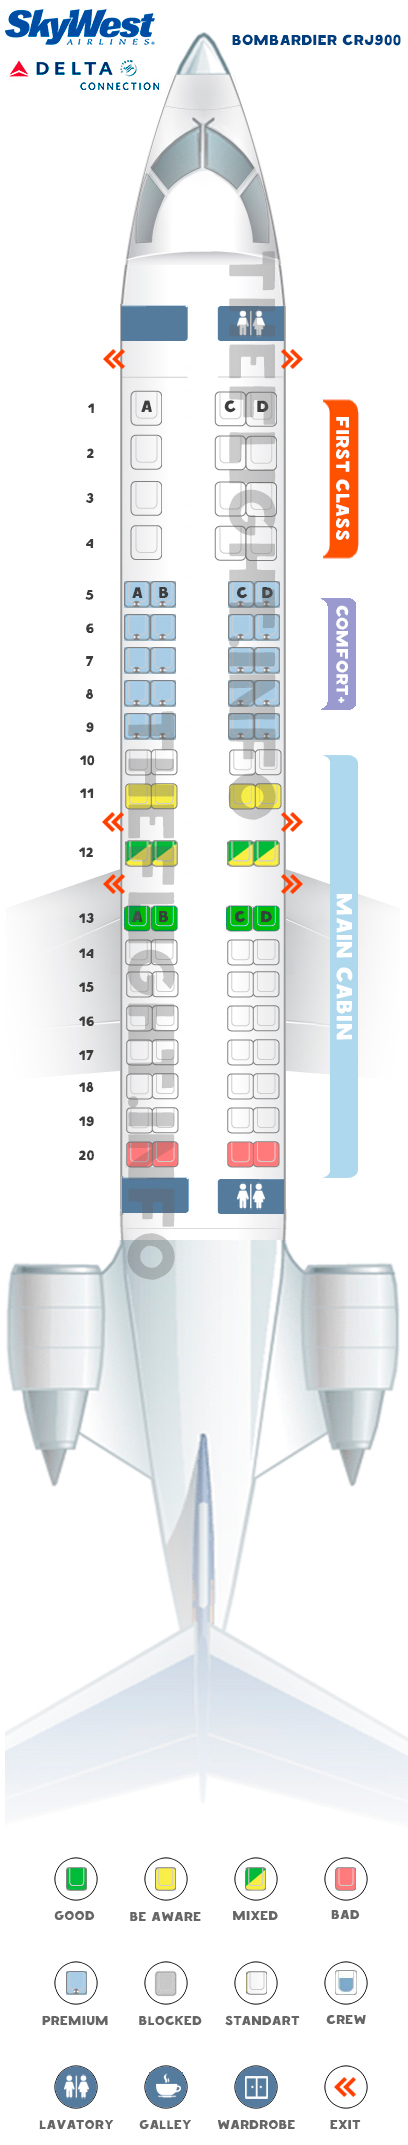 Seat map CRJ 900 Delta Connection Skywest